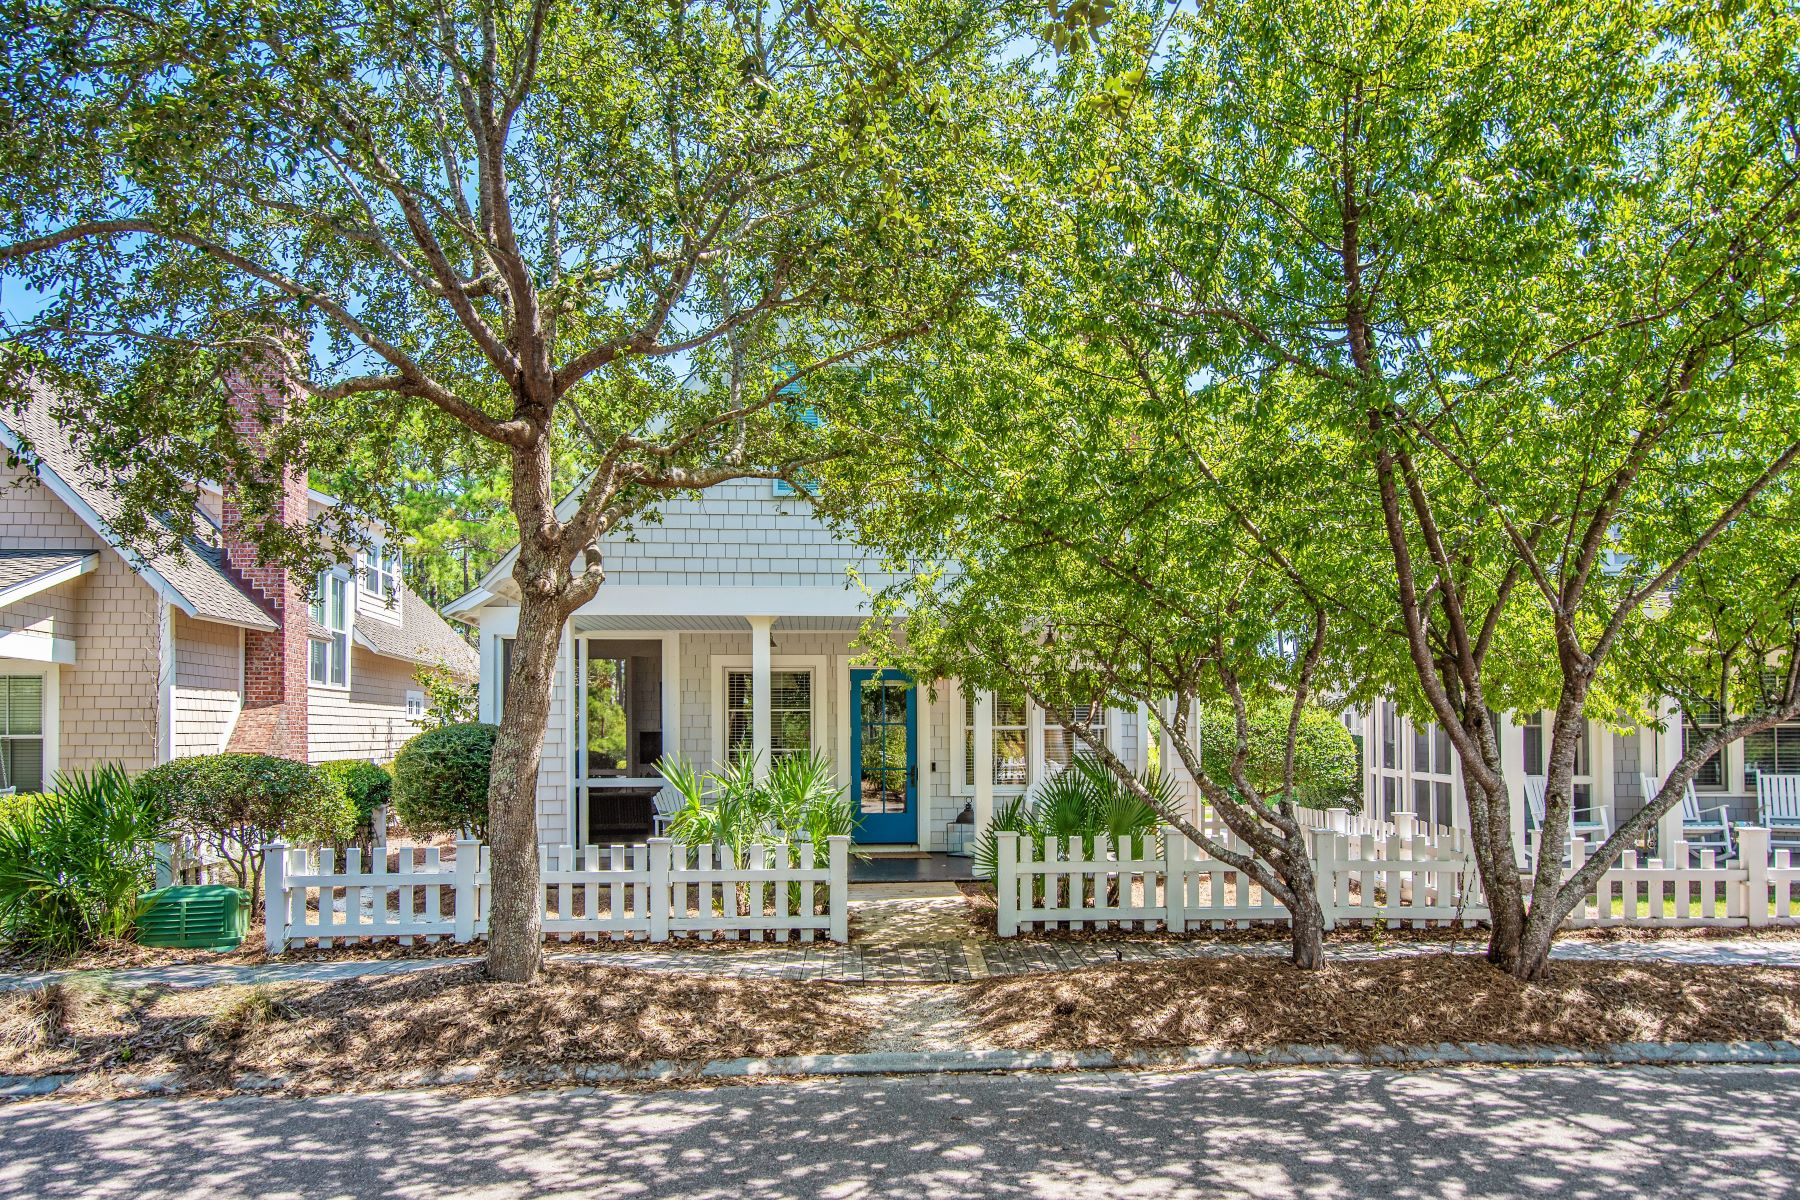 Single Family Homes for Sale at Charming Home on the Beach Side of 30A 253 Salt Box Lane, Watersound, Florida 32461 United States